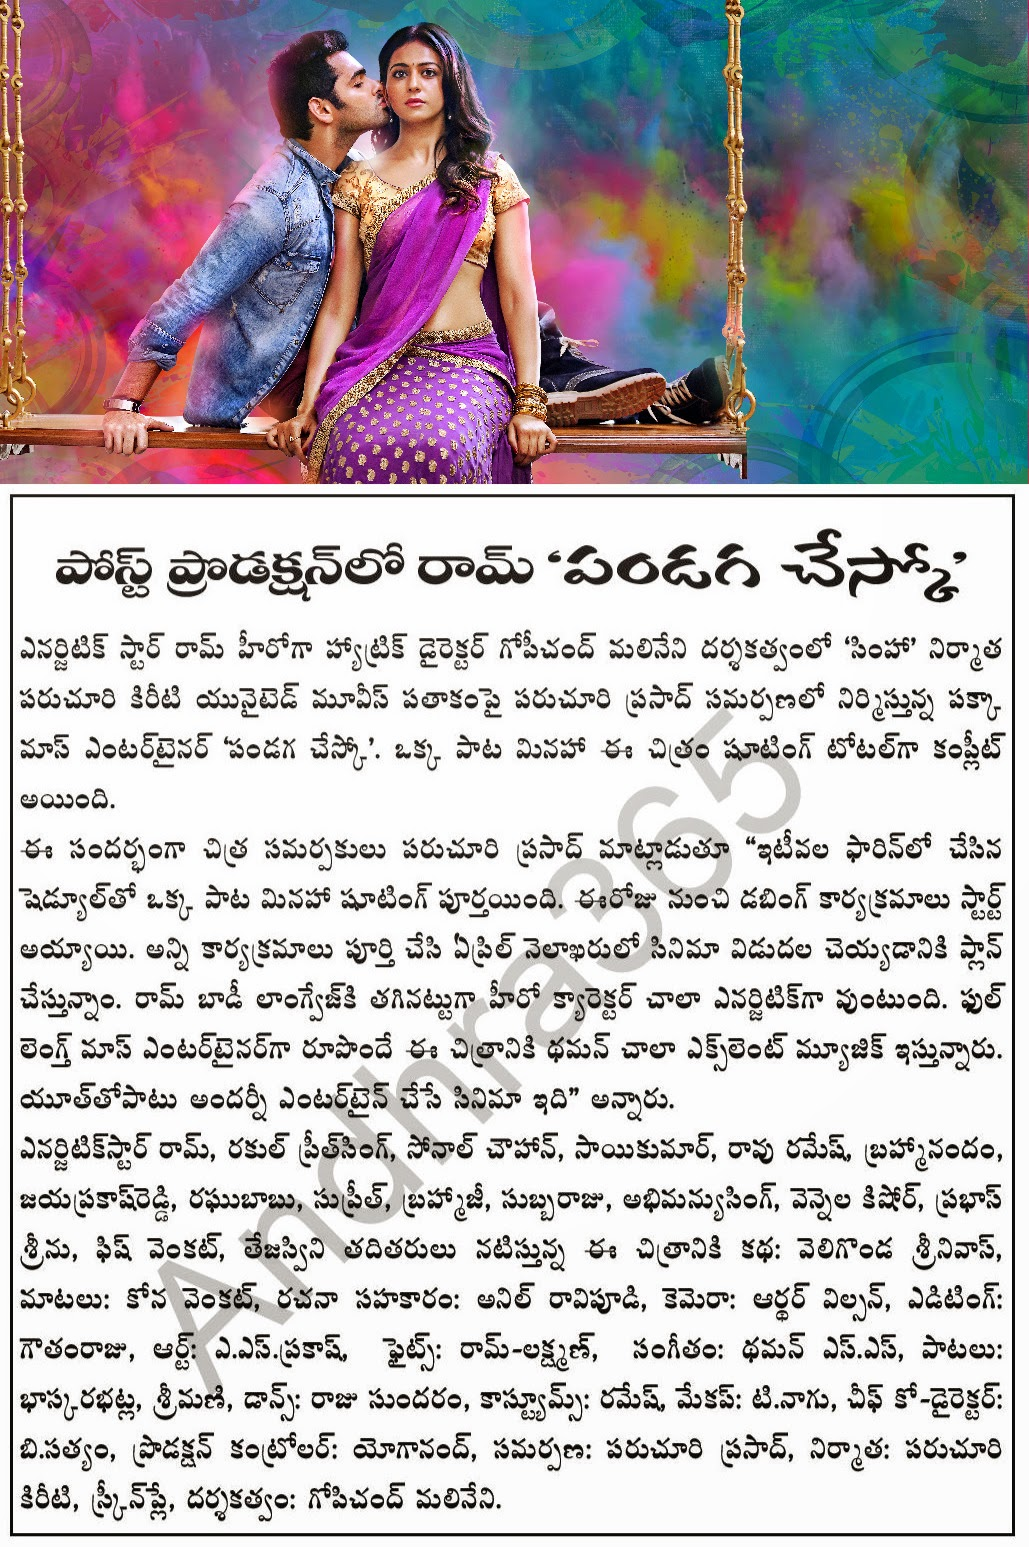 Pandagachesko in Post-Production